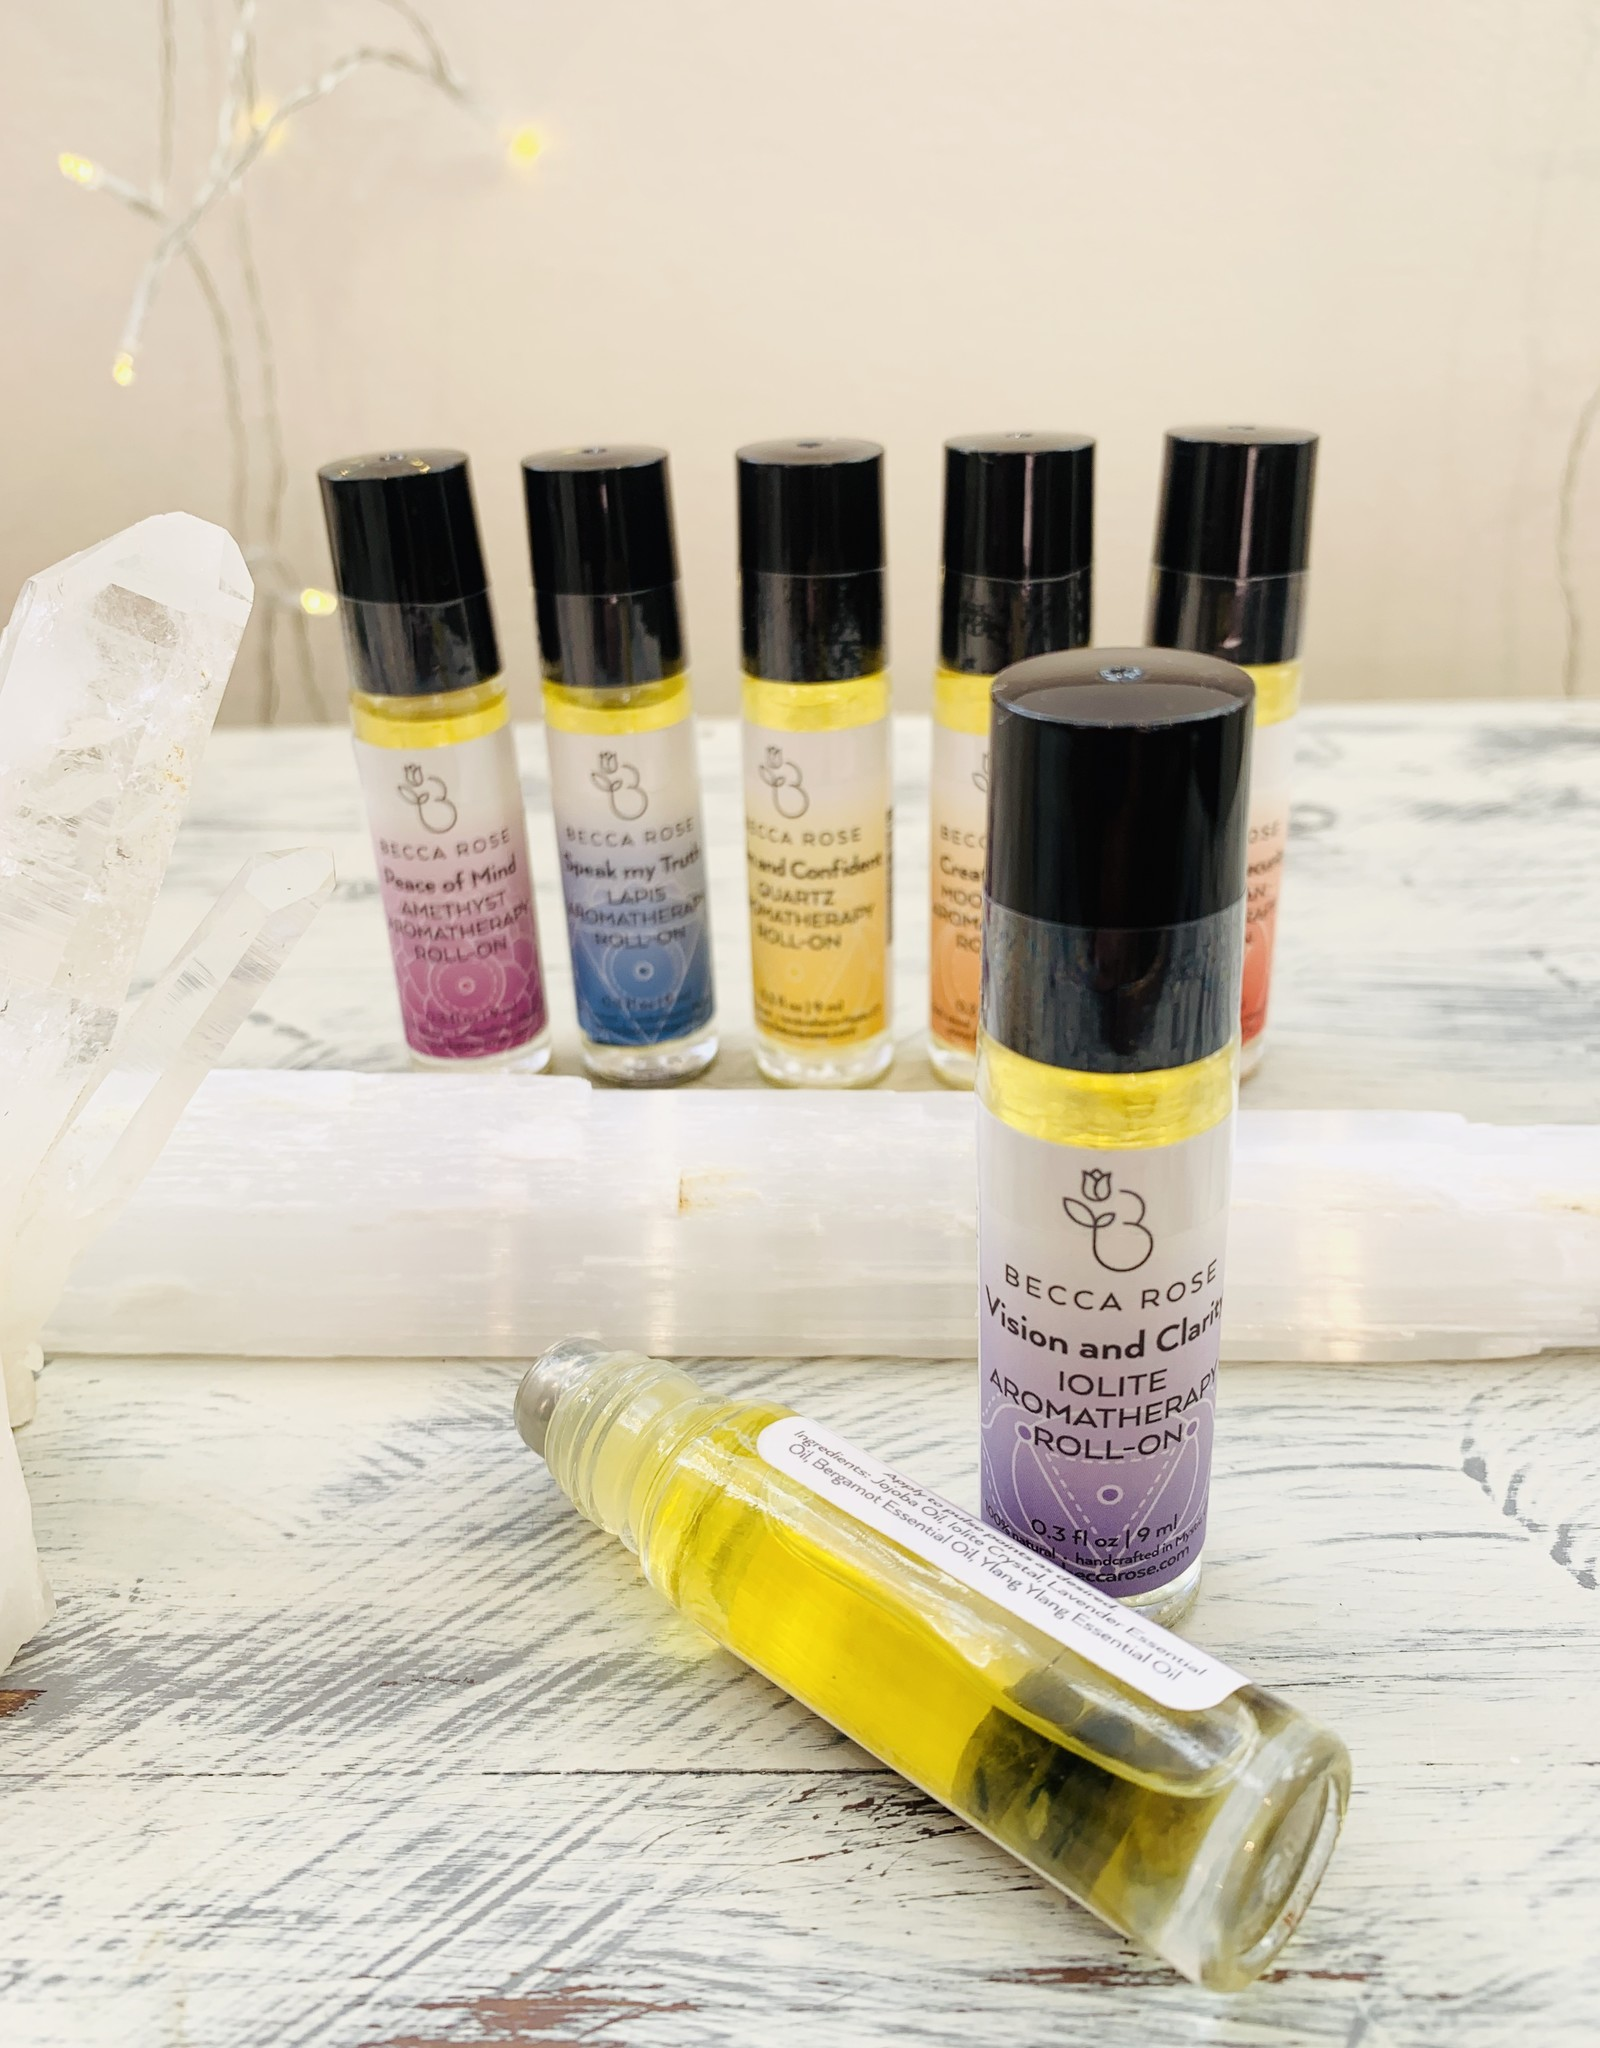 Becca Rose Third Eye Chakra: Vision and Clarity Roll-on